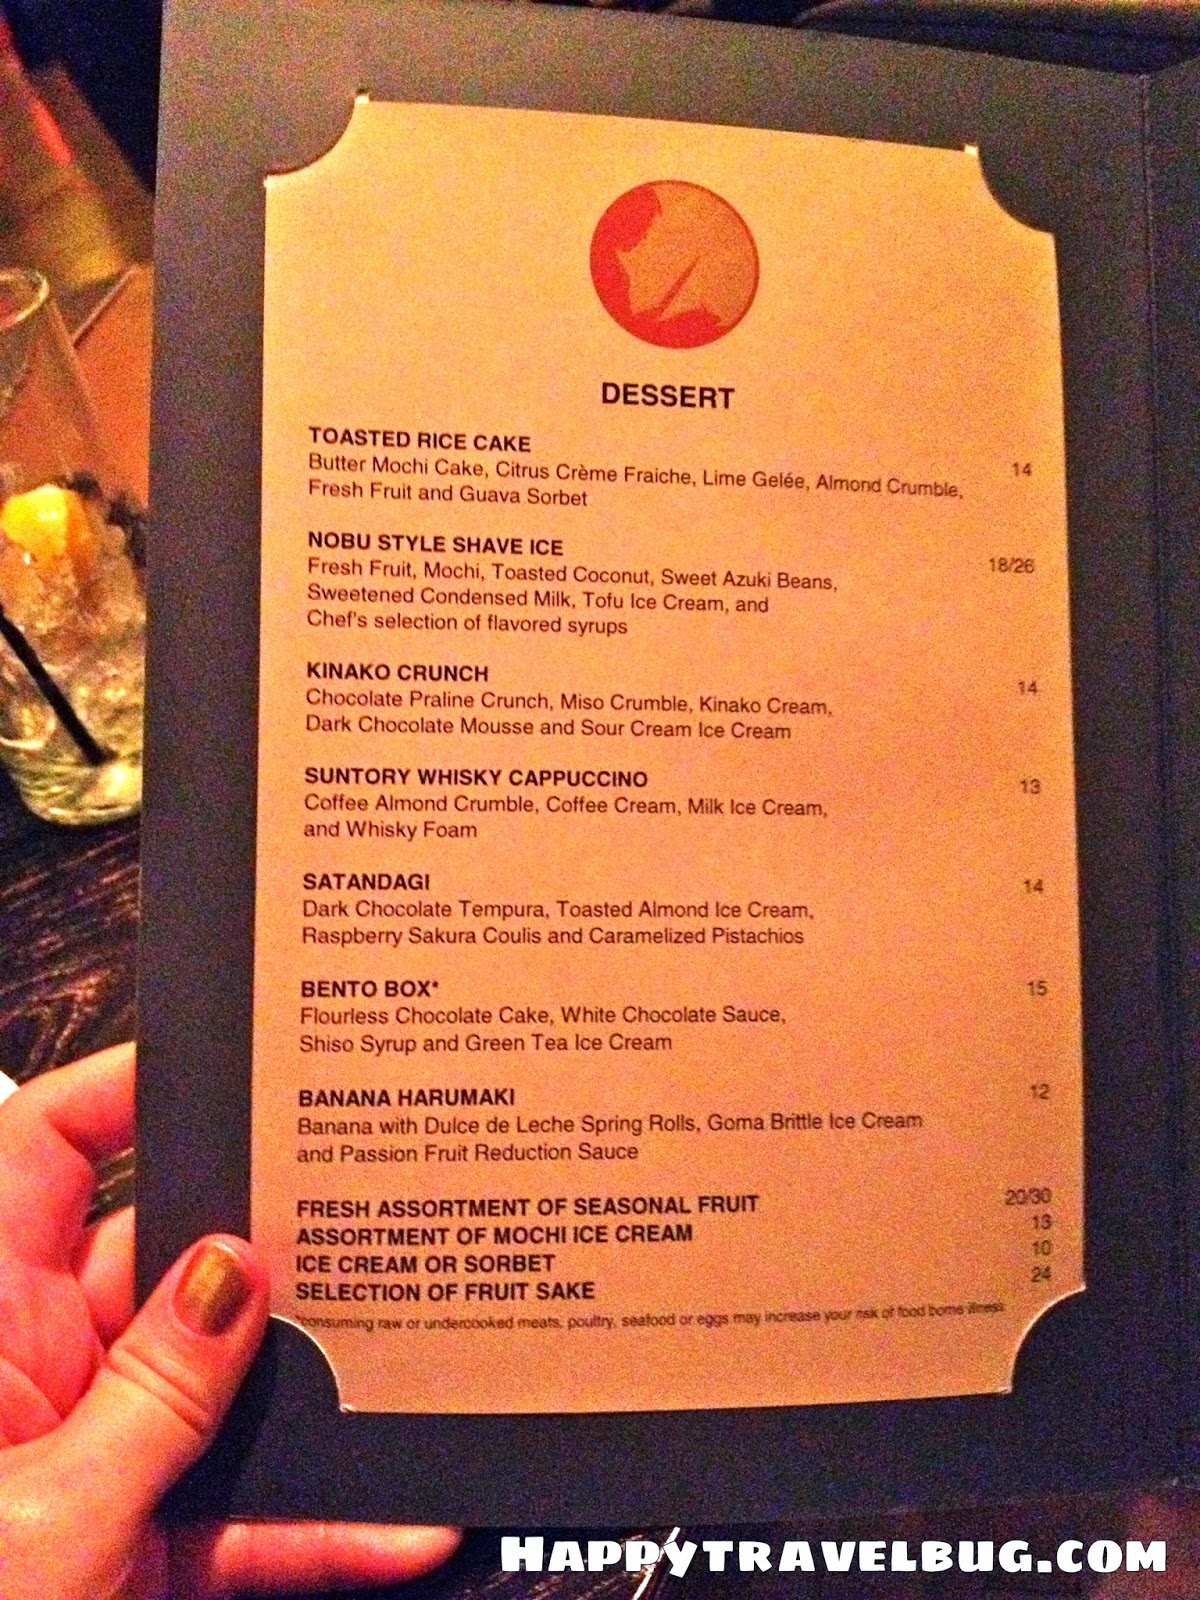 Dessert menu from Nobu restaurant in Las Vegas